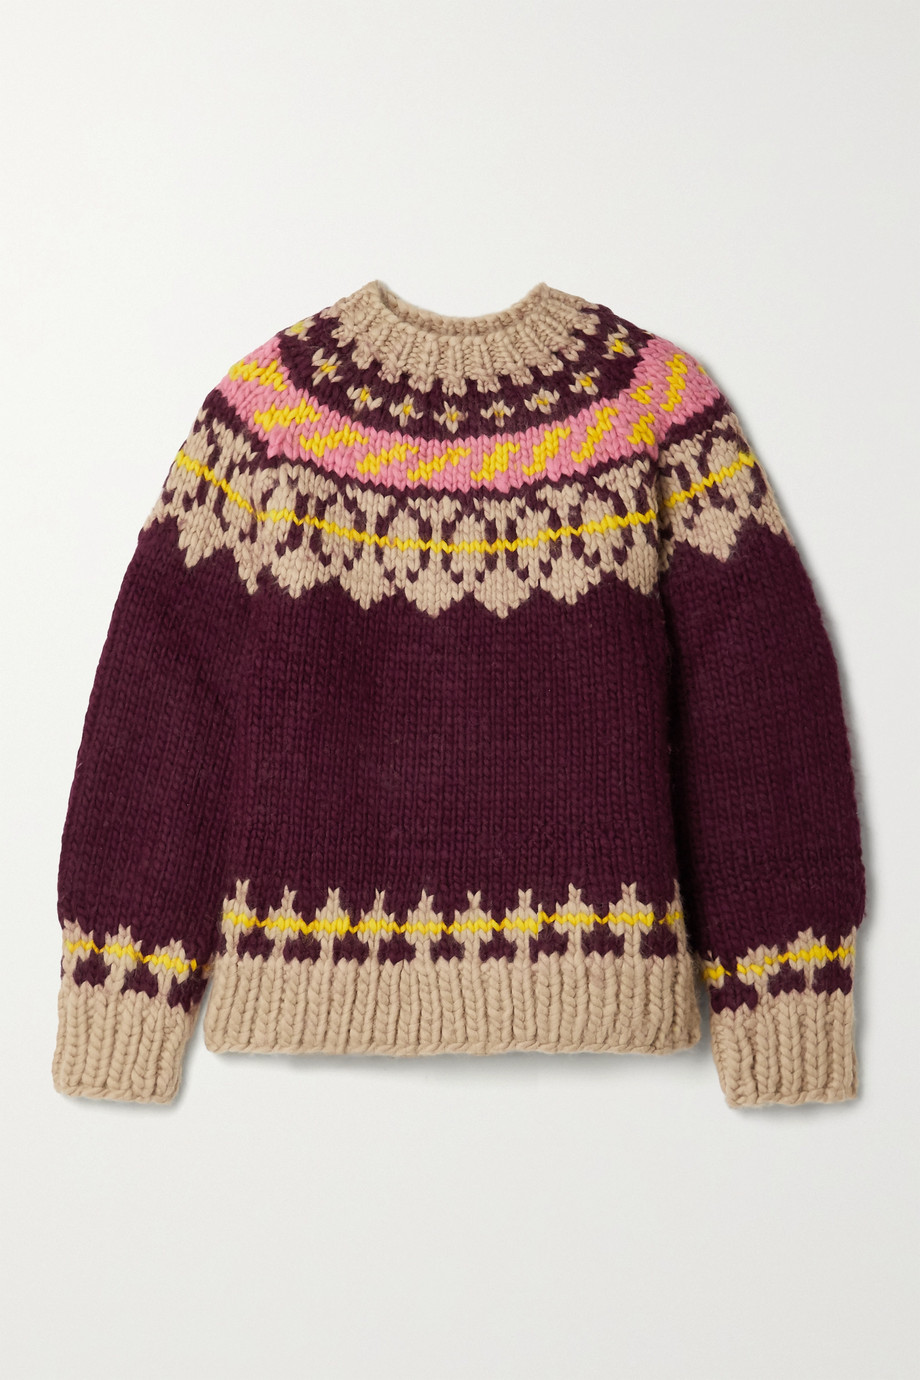 TORY BURCH Fair Isle wool sweater